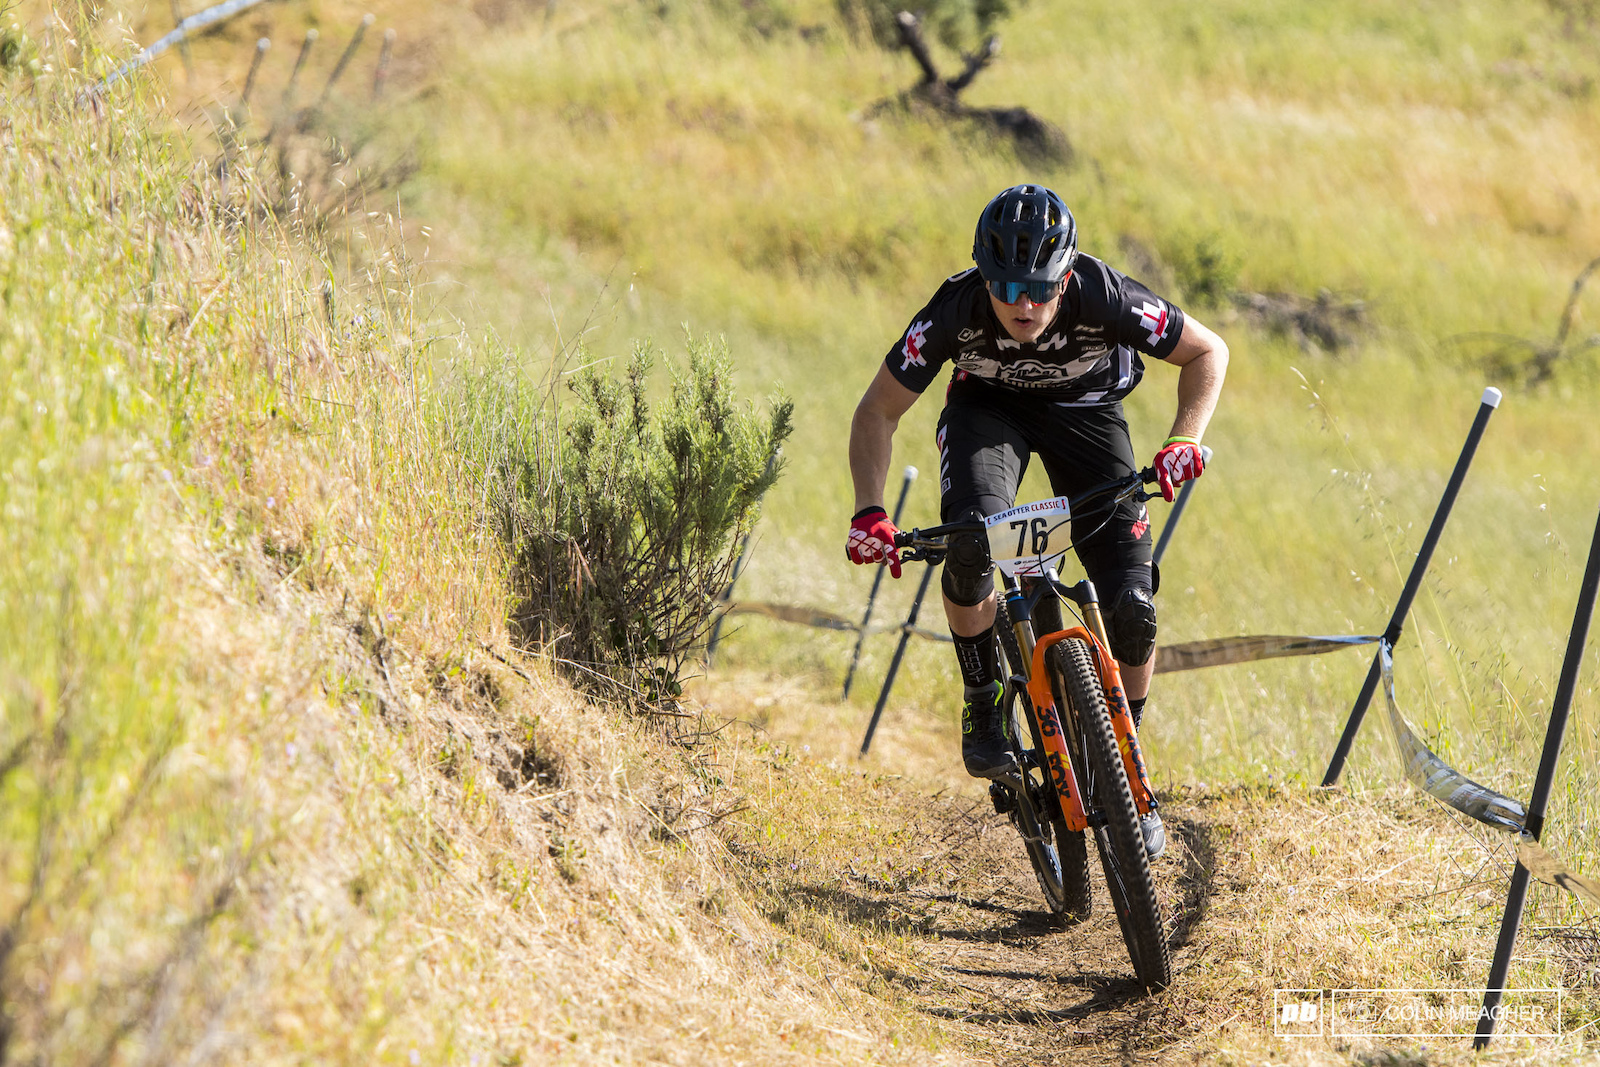 Former Road Bike Action editor Spencer Rathkamp is no stranger to dirt and his top 20 time shows that he can put it down.